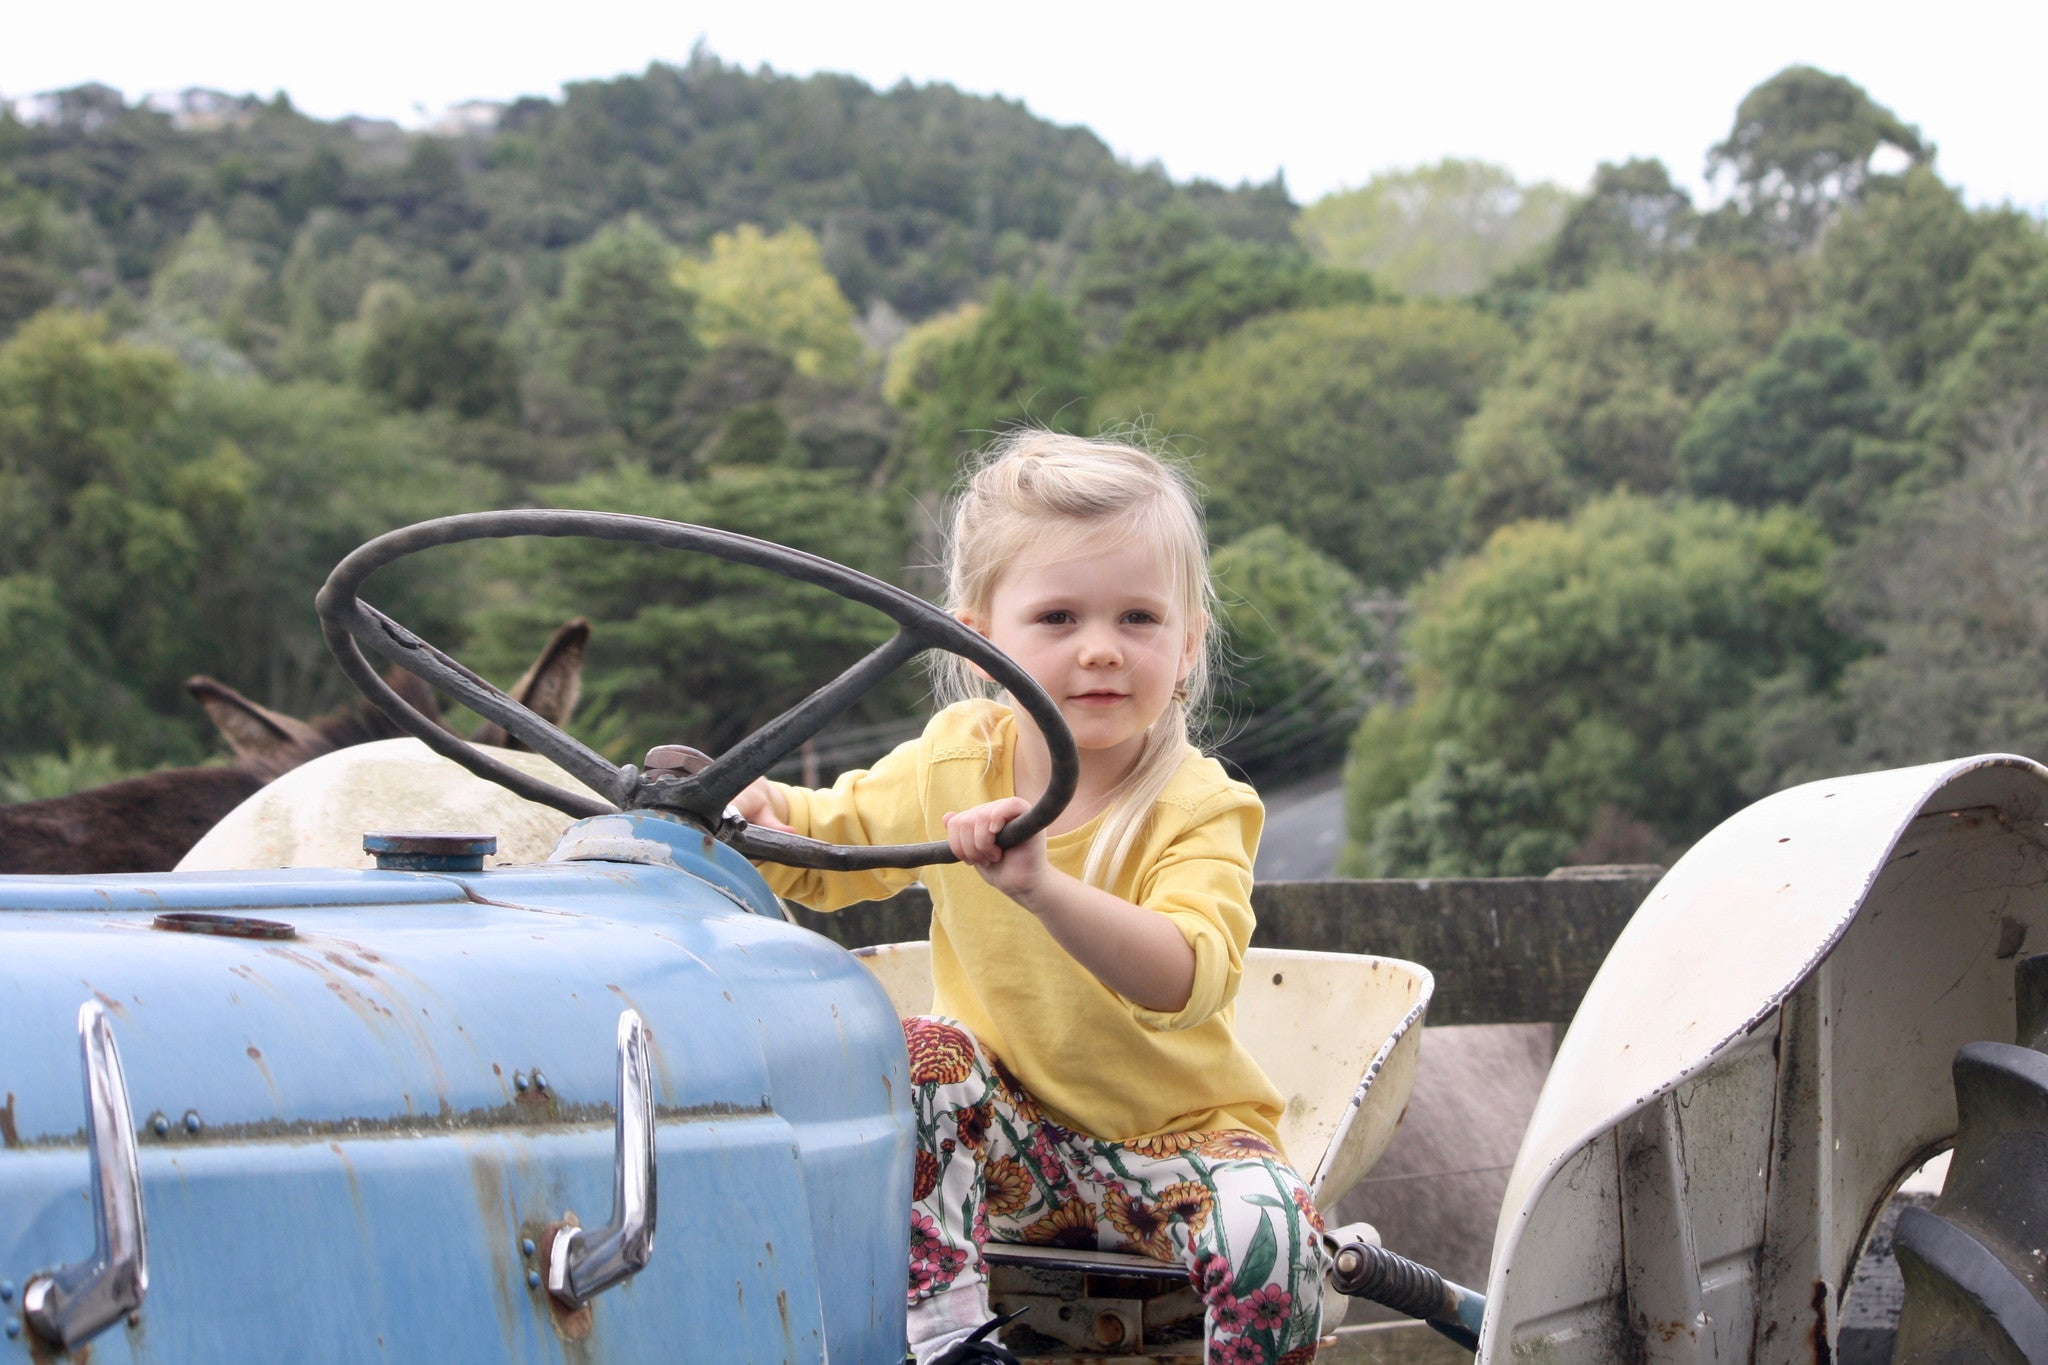 Kids Riding old school tractors at Kiwi Valley Farm, Wilechile Boutique